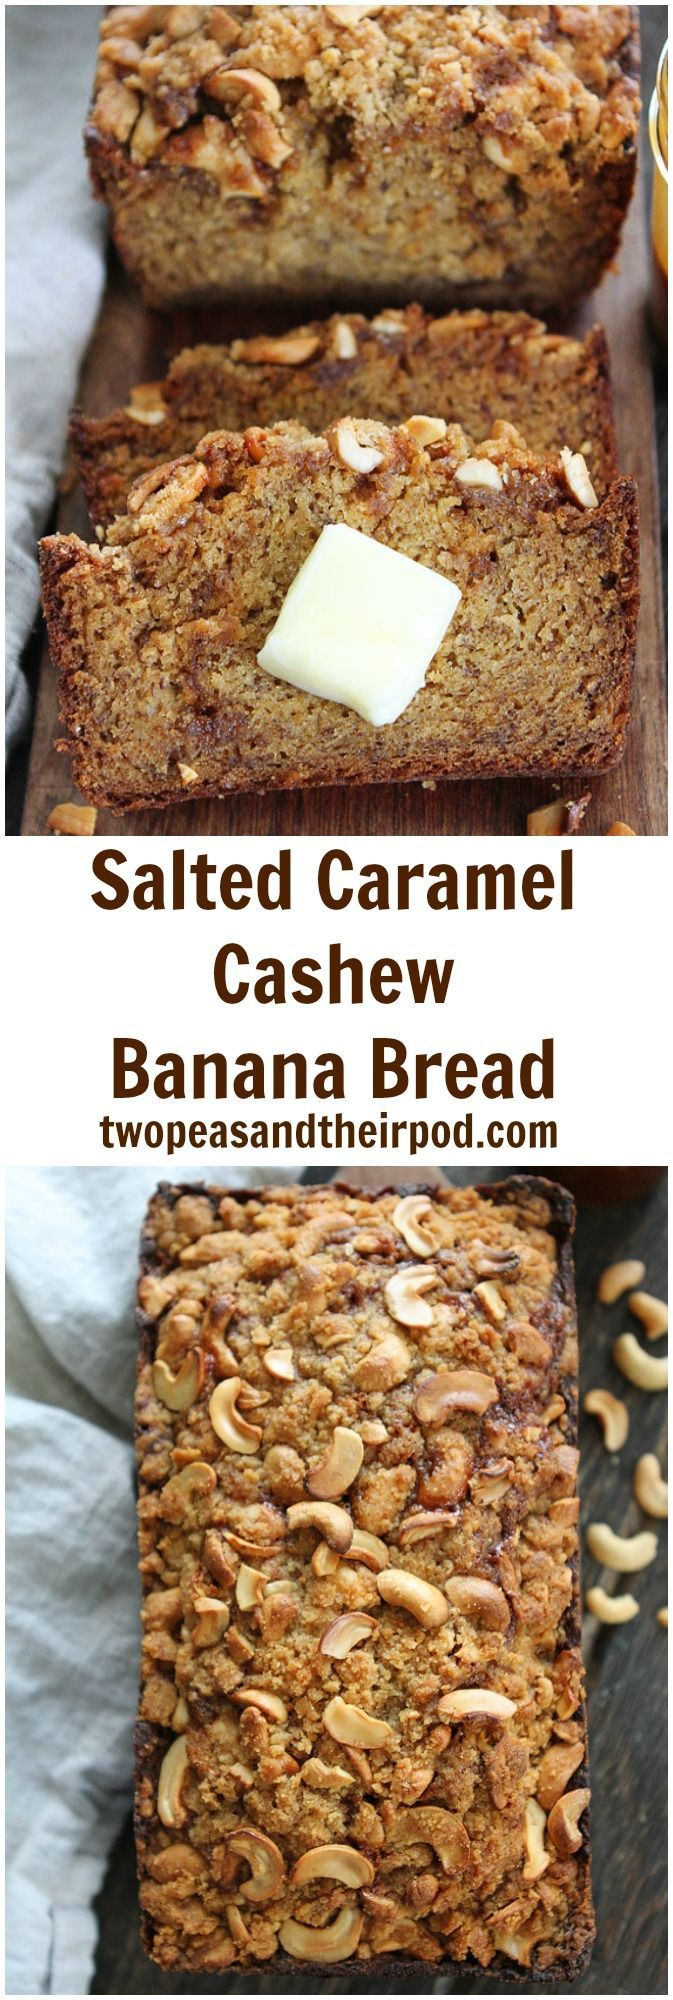 Salted Caramel Cashew Banana Bread Recipe on http://twopeasandtheirpod.com This is the BEST banana bread! The salted caramel swirl and sweet and salty cashew streusel topping is AMAZING!